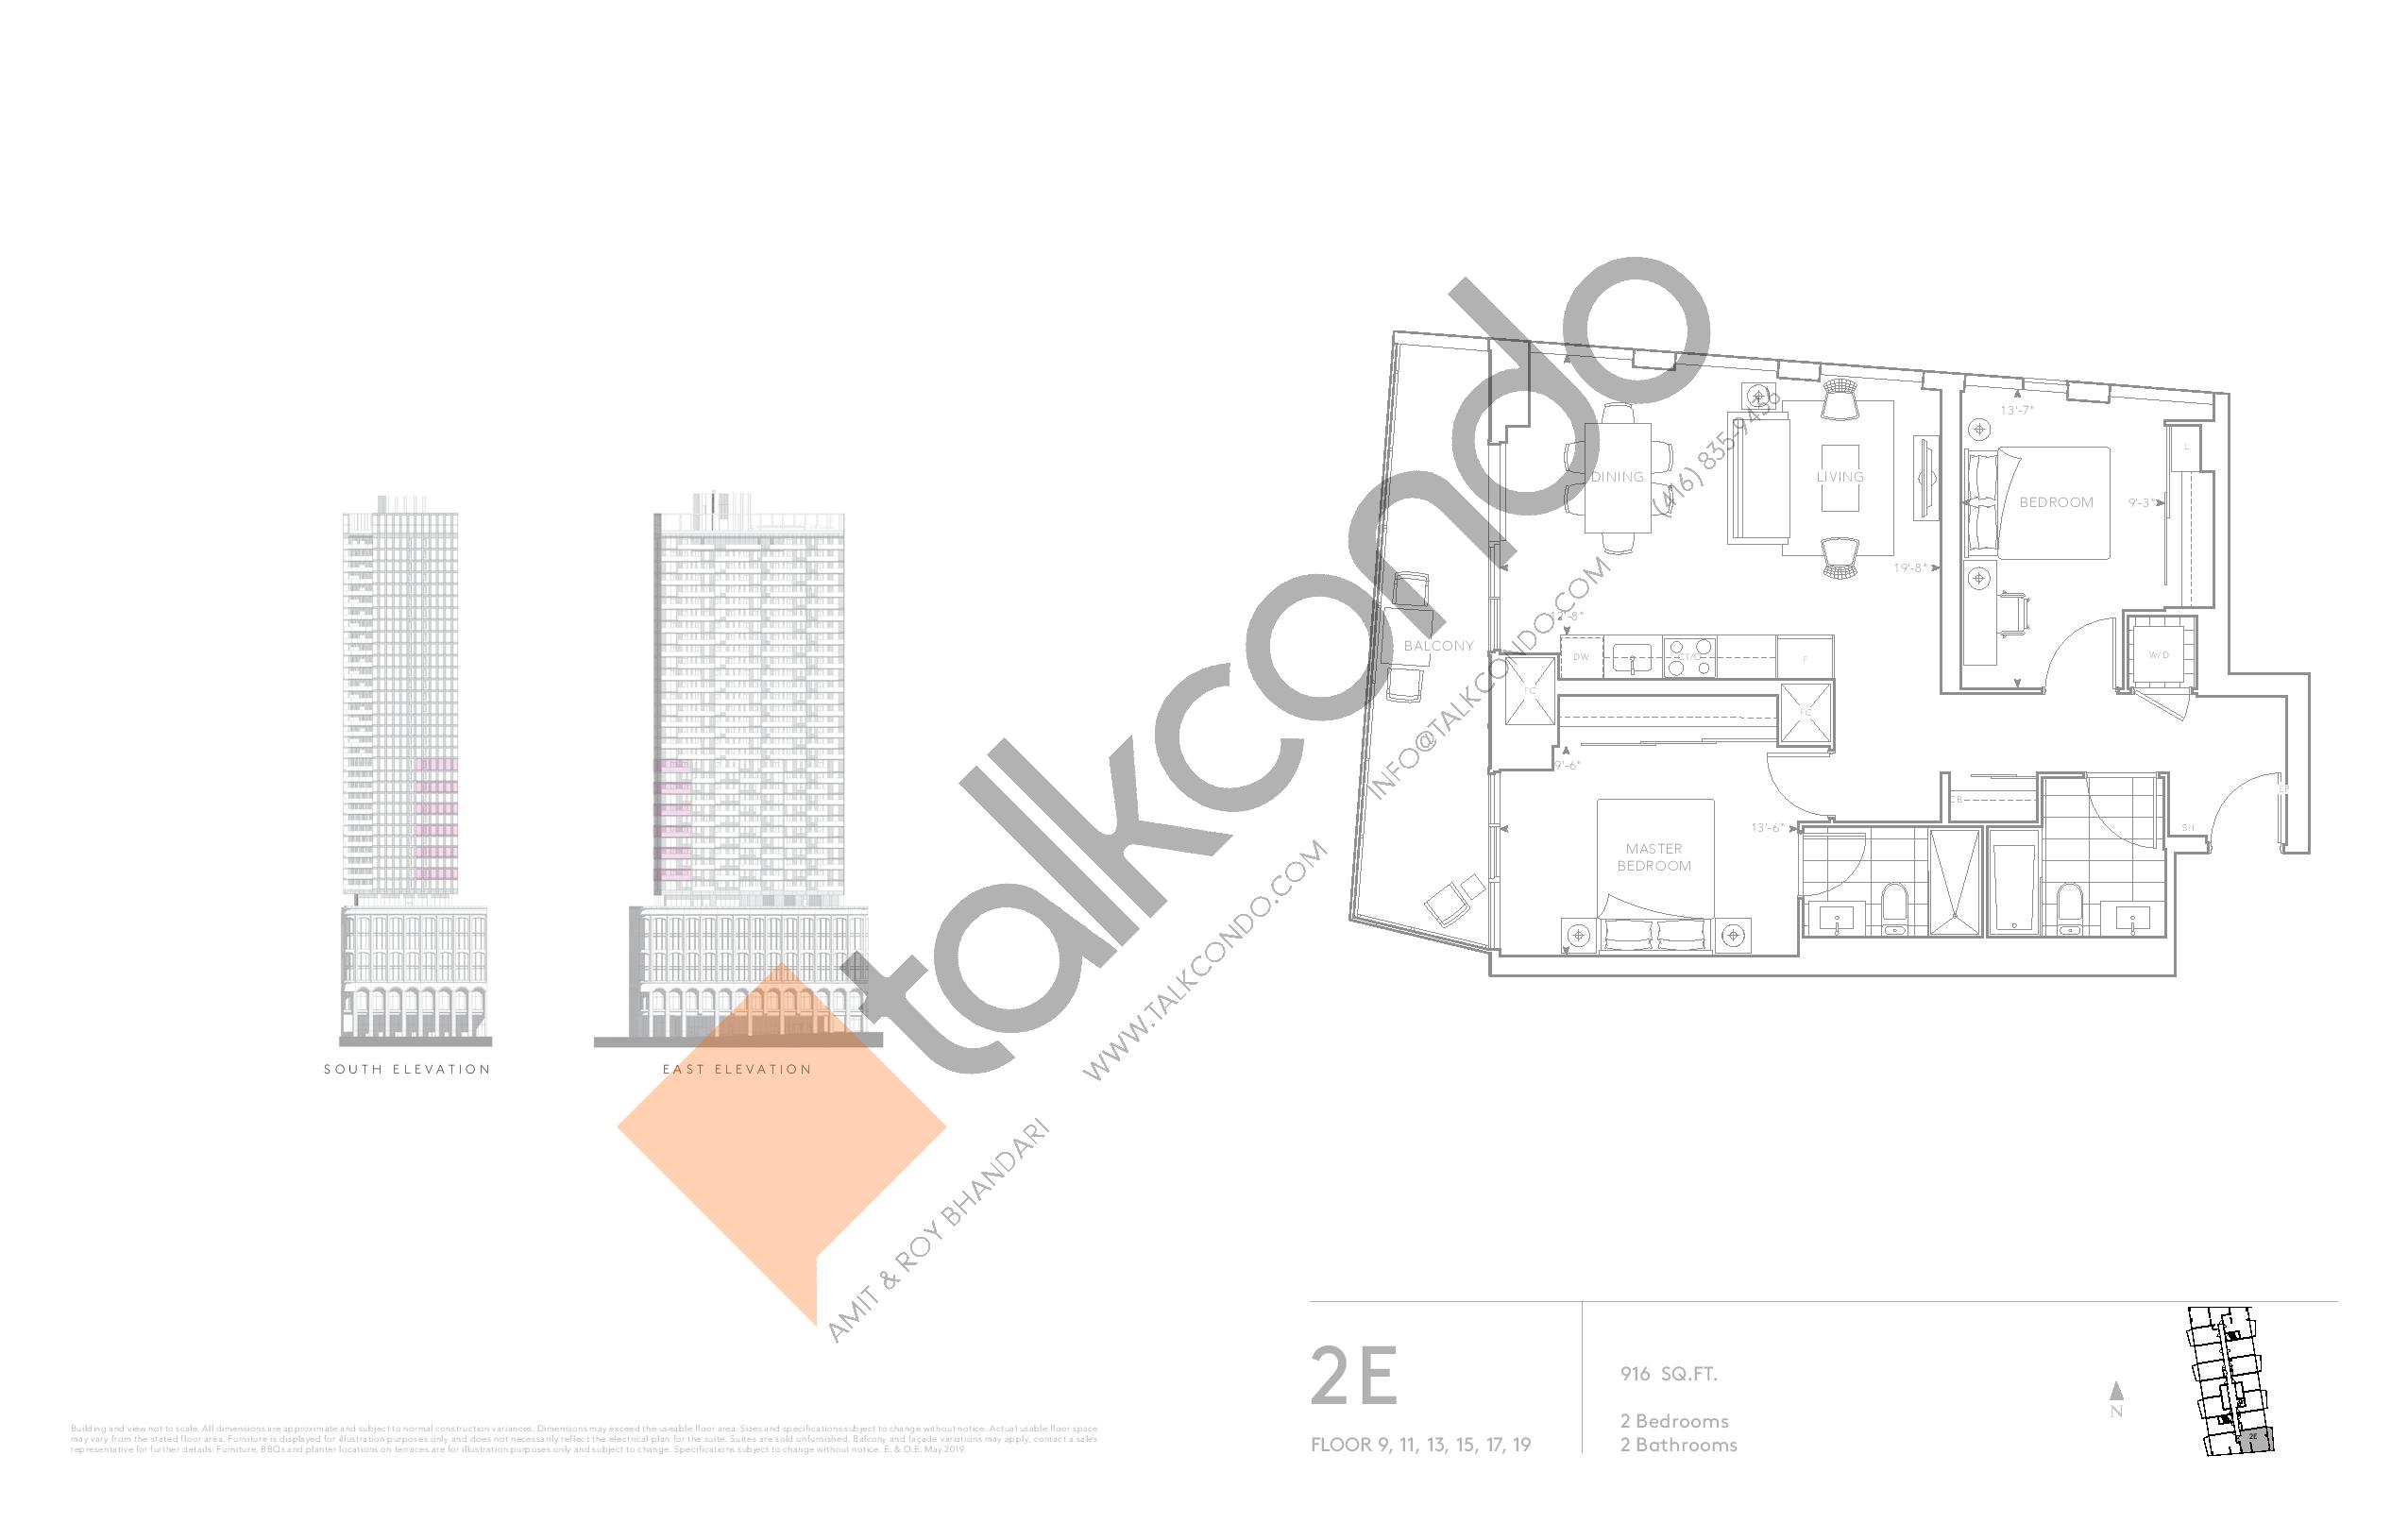 2E - Classic Series Floor Plan at Tridel at The Well Condos - 916 sq.ft